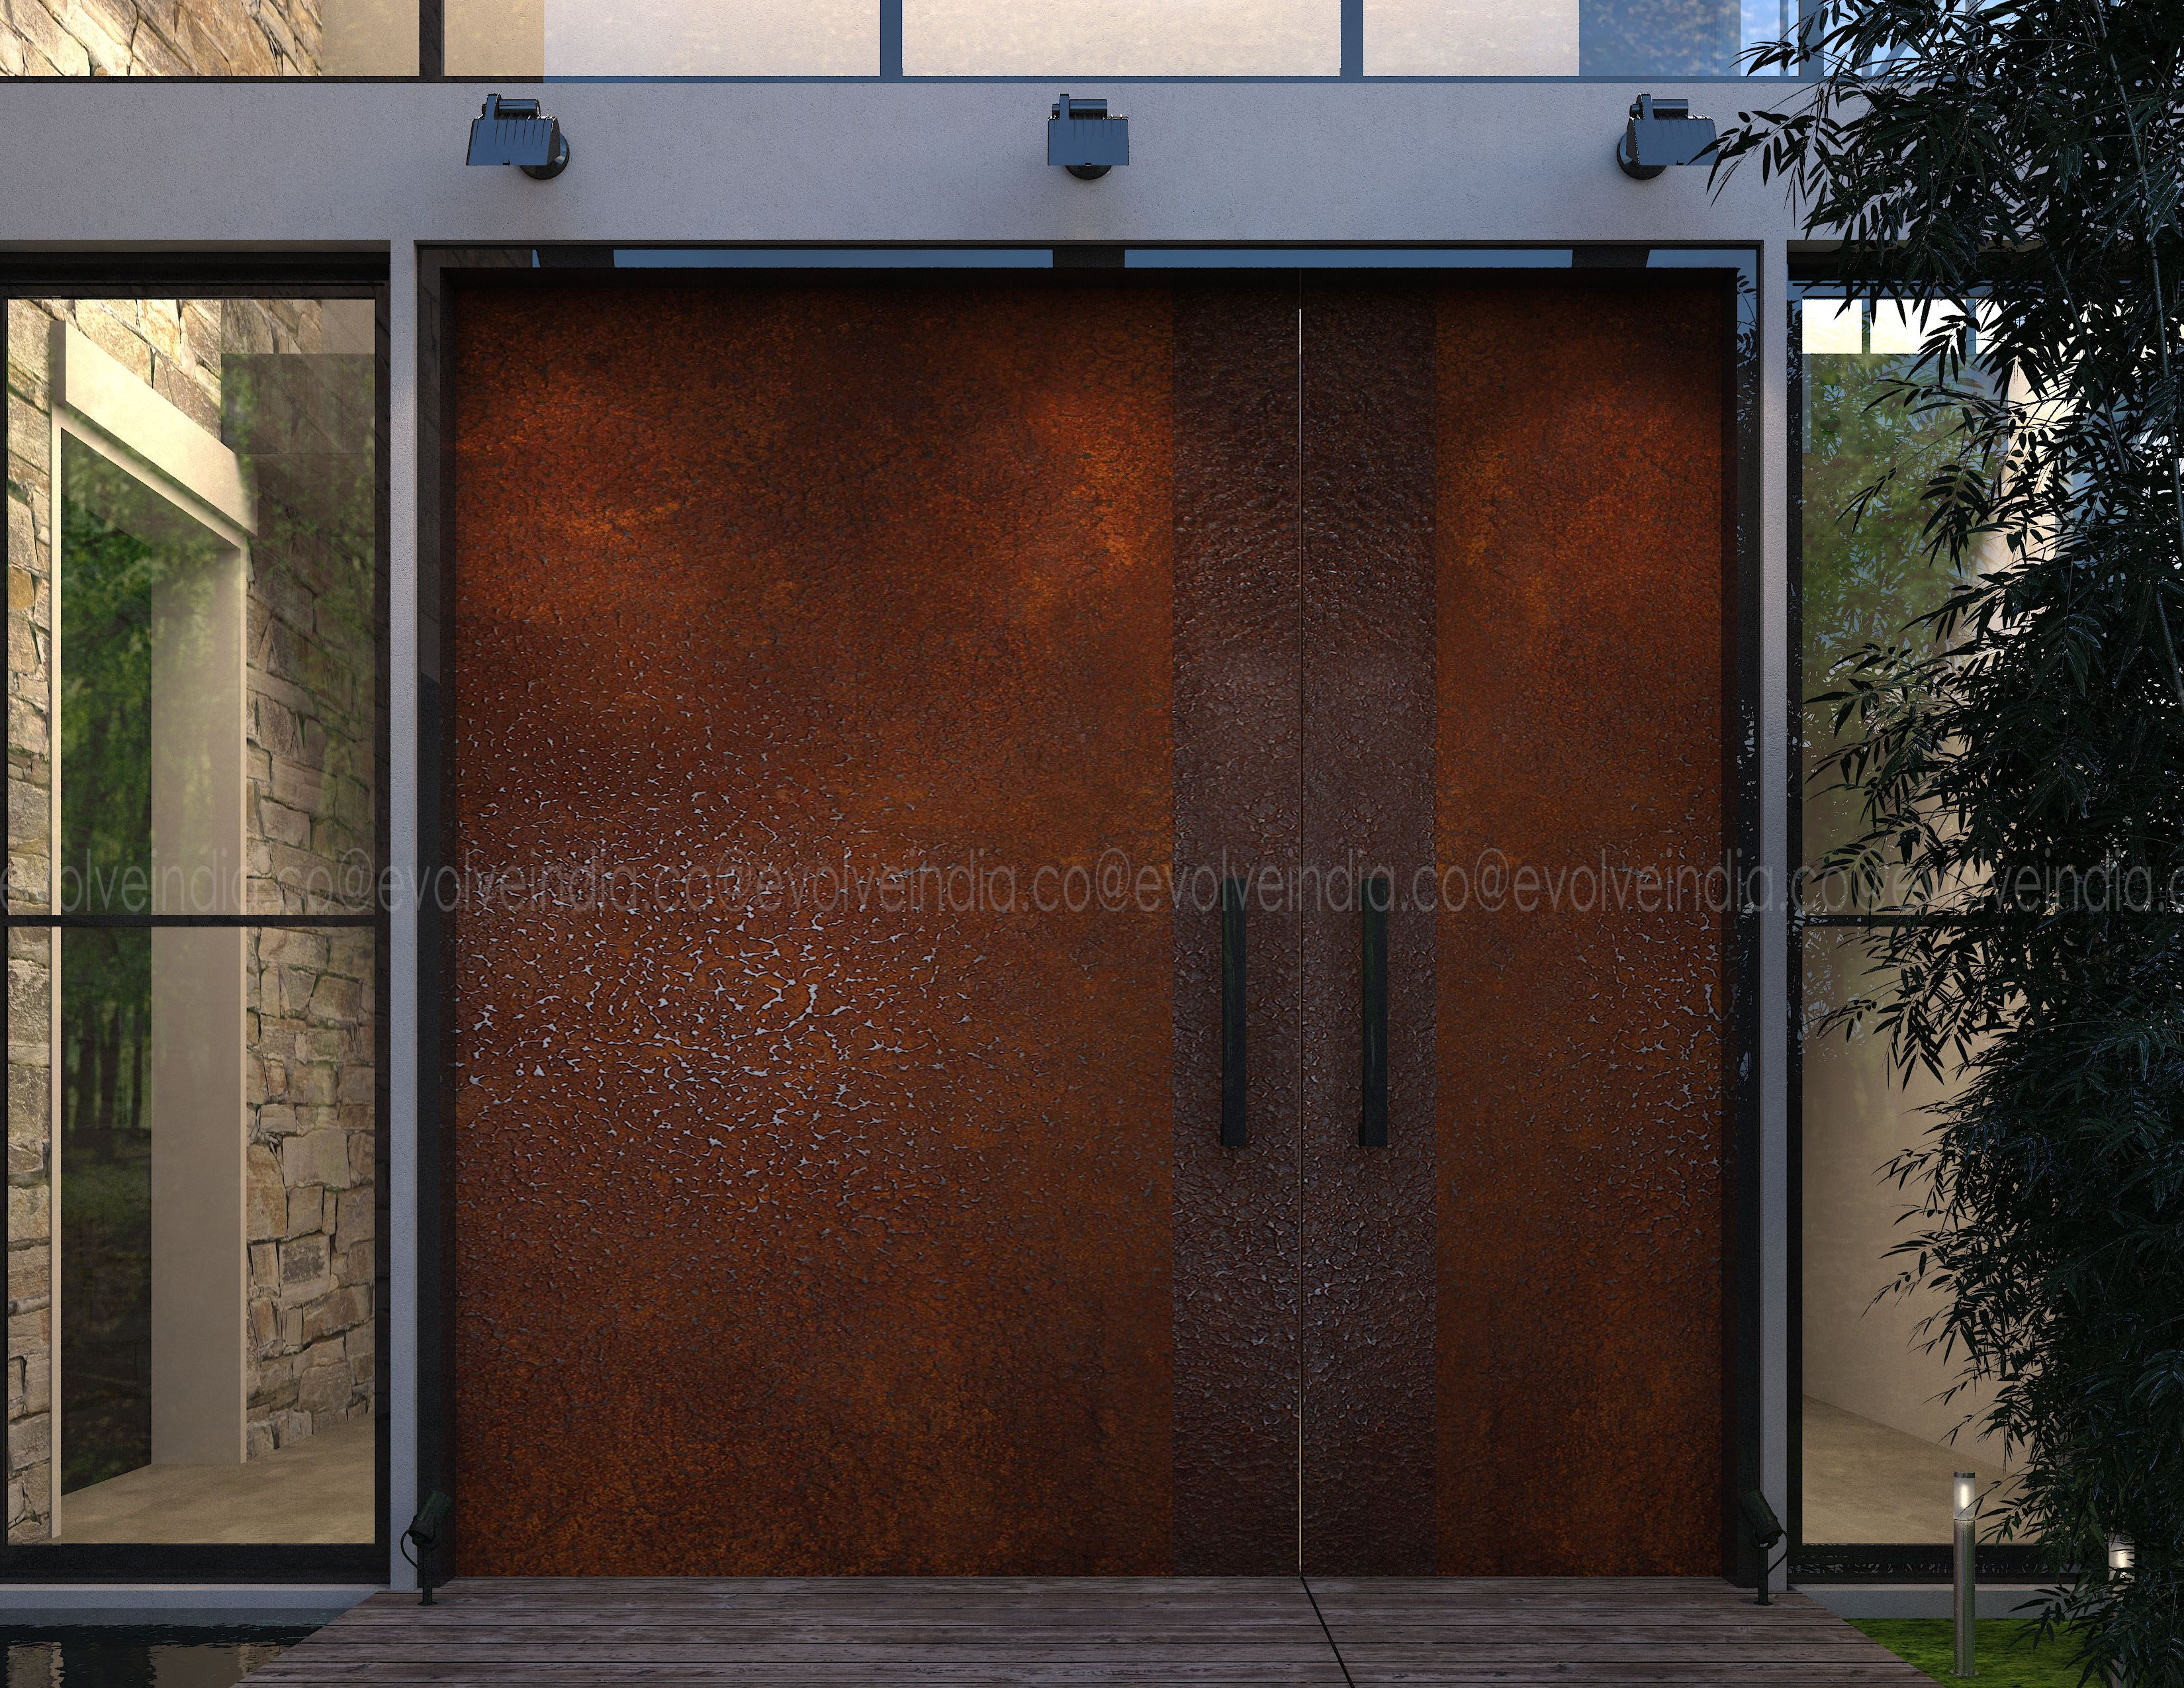 Evolveyoursurface Rustfinish Doorskins Exterior Doordesign Exteriordesign Exteriorinspiration In 2020 Concrete Decor Exterior Solutions Decorative Wall Panels